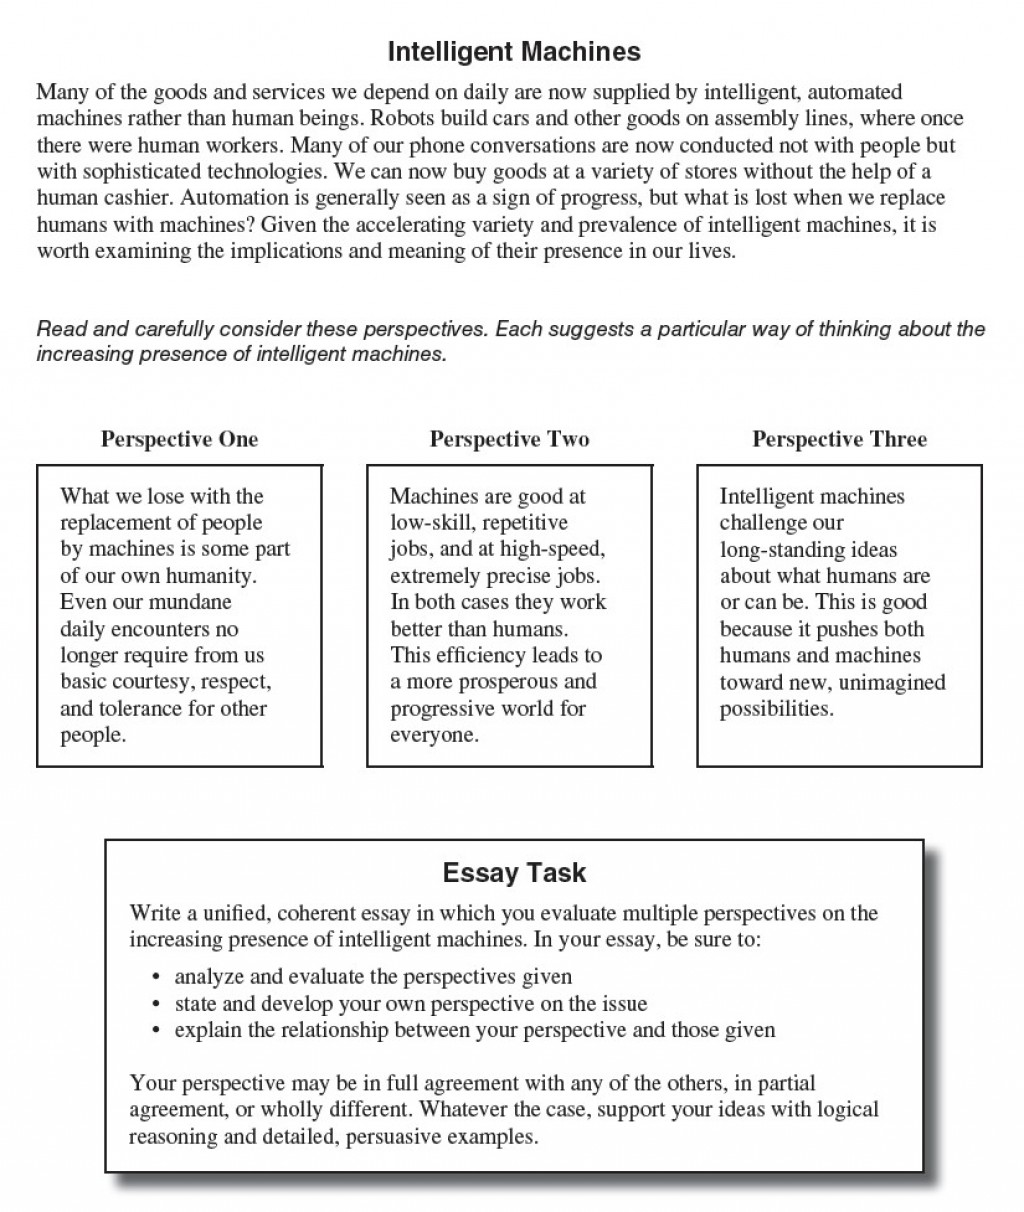 005 Act Prompt How To Write An Essay Dreaded 2018 Template Large